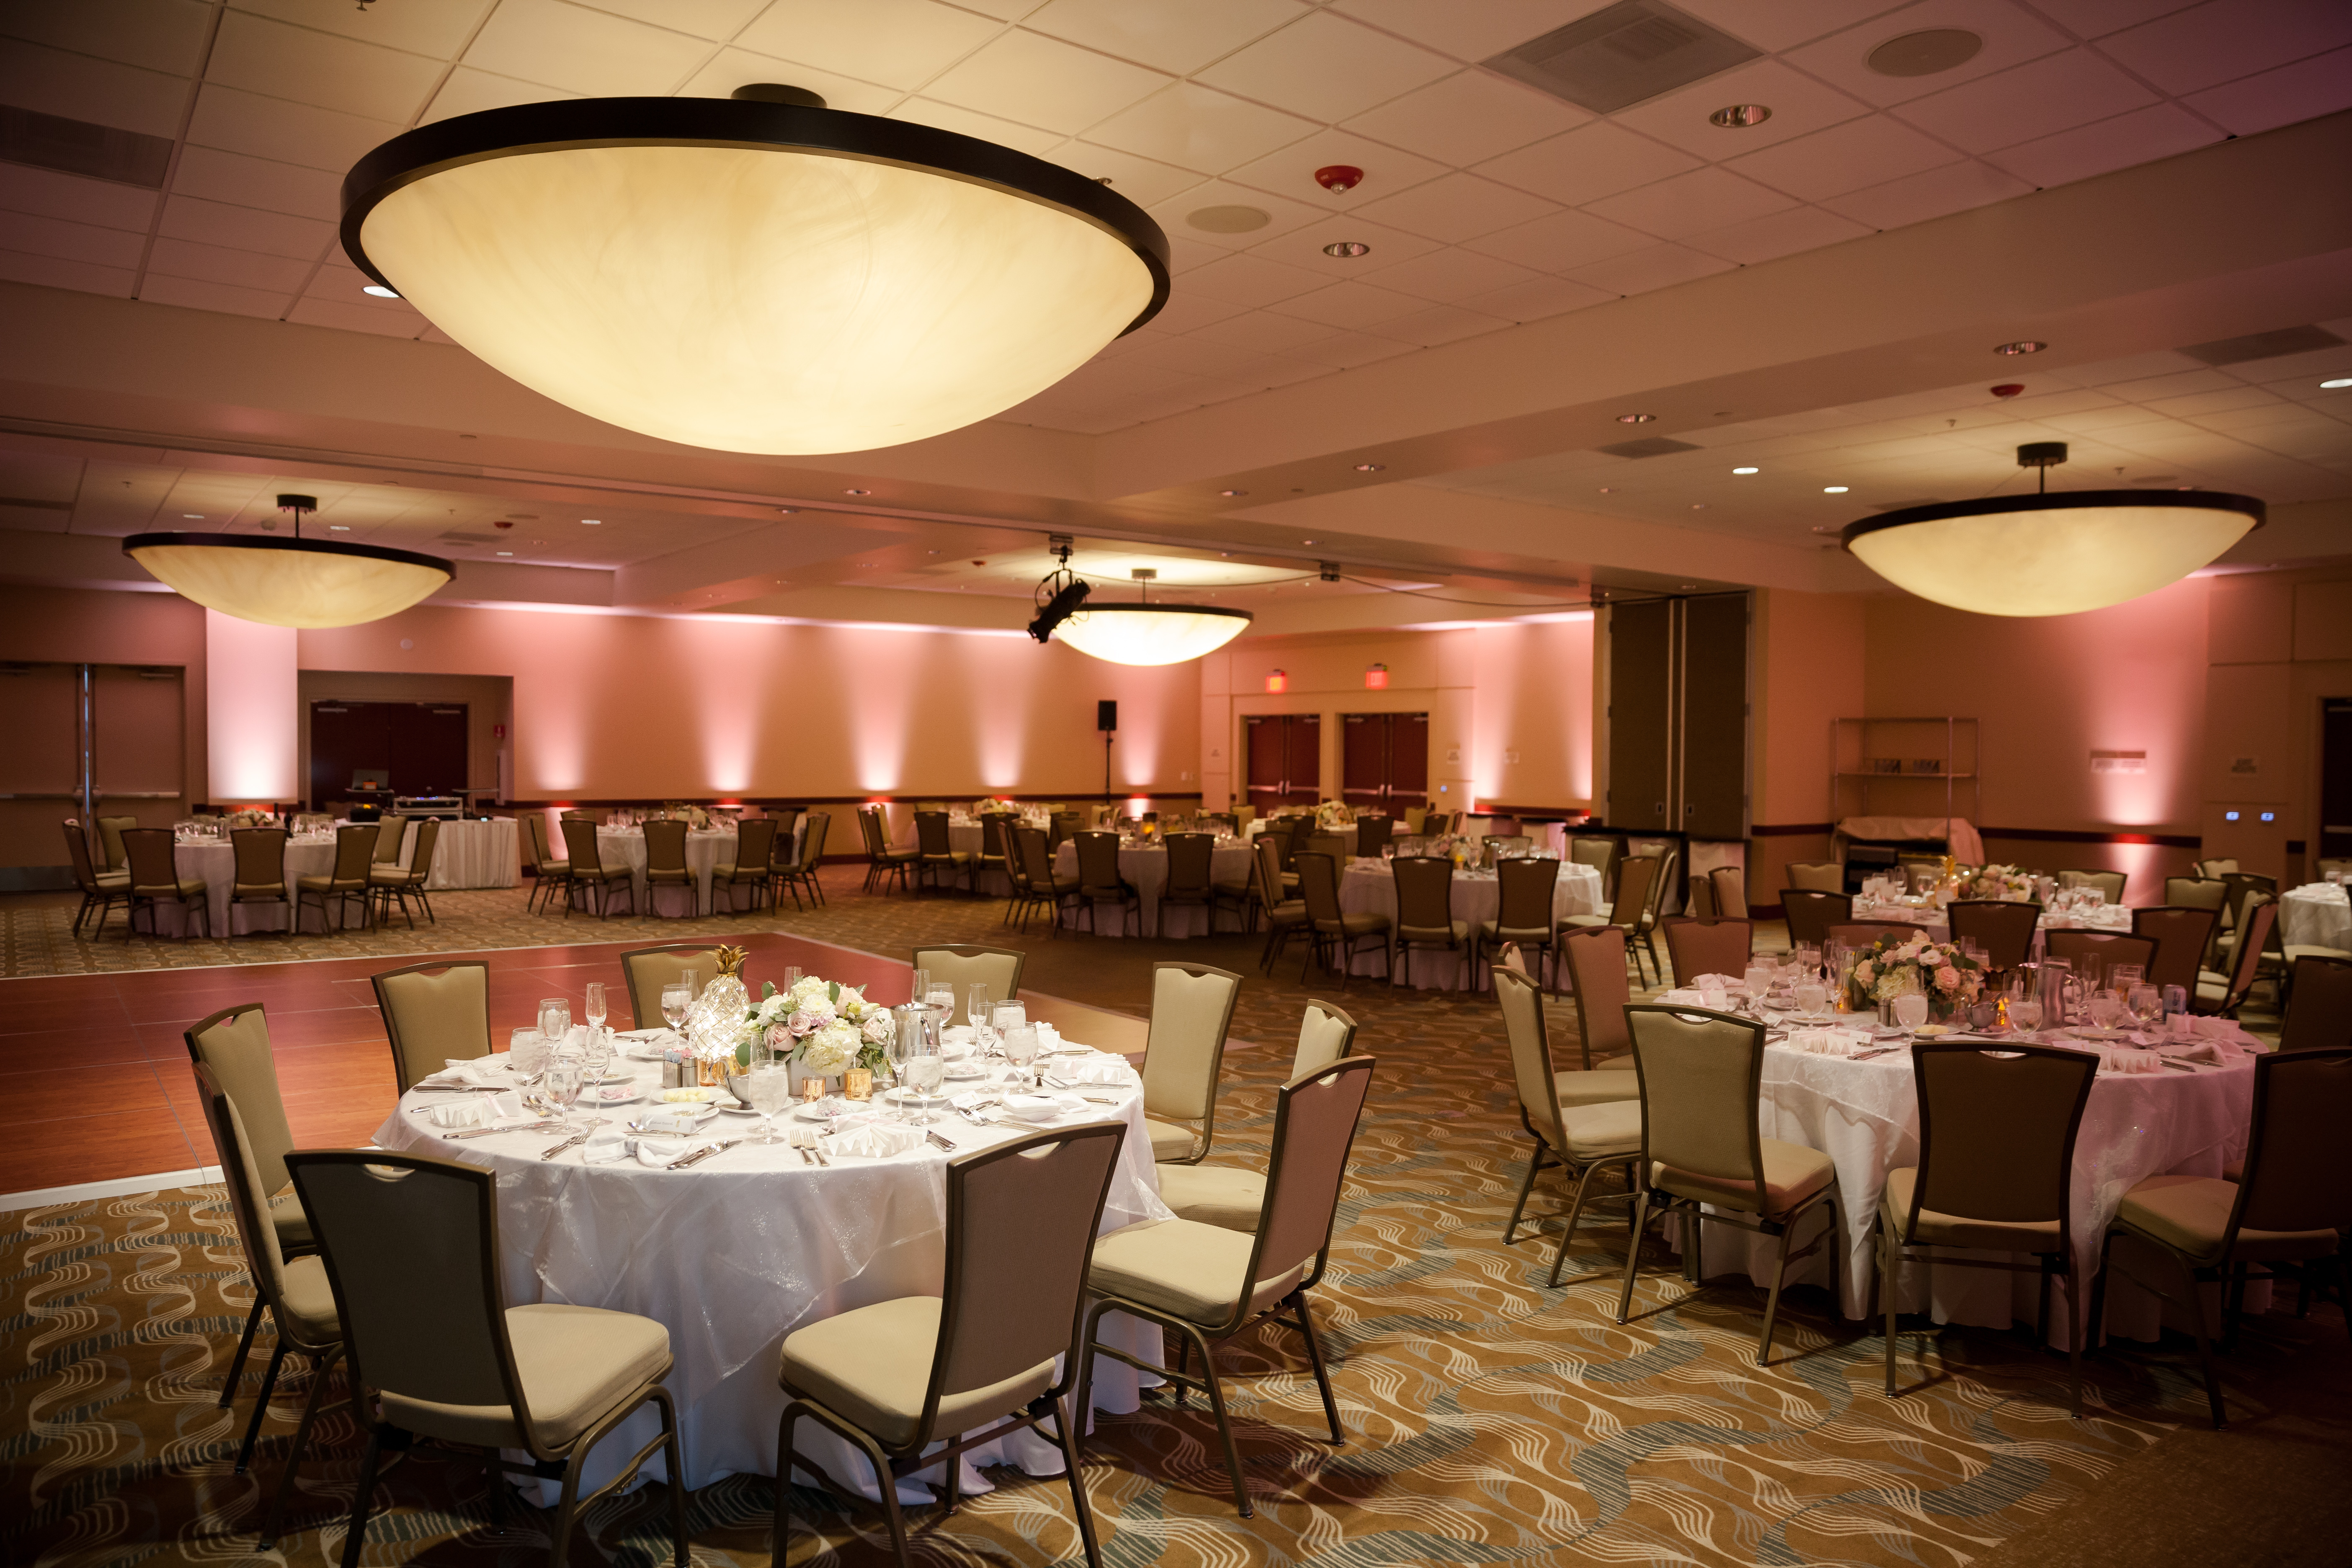 Meeting hall decorated for a wedding reception